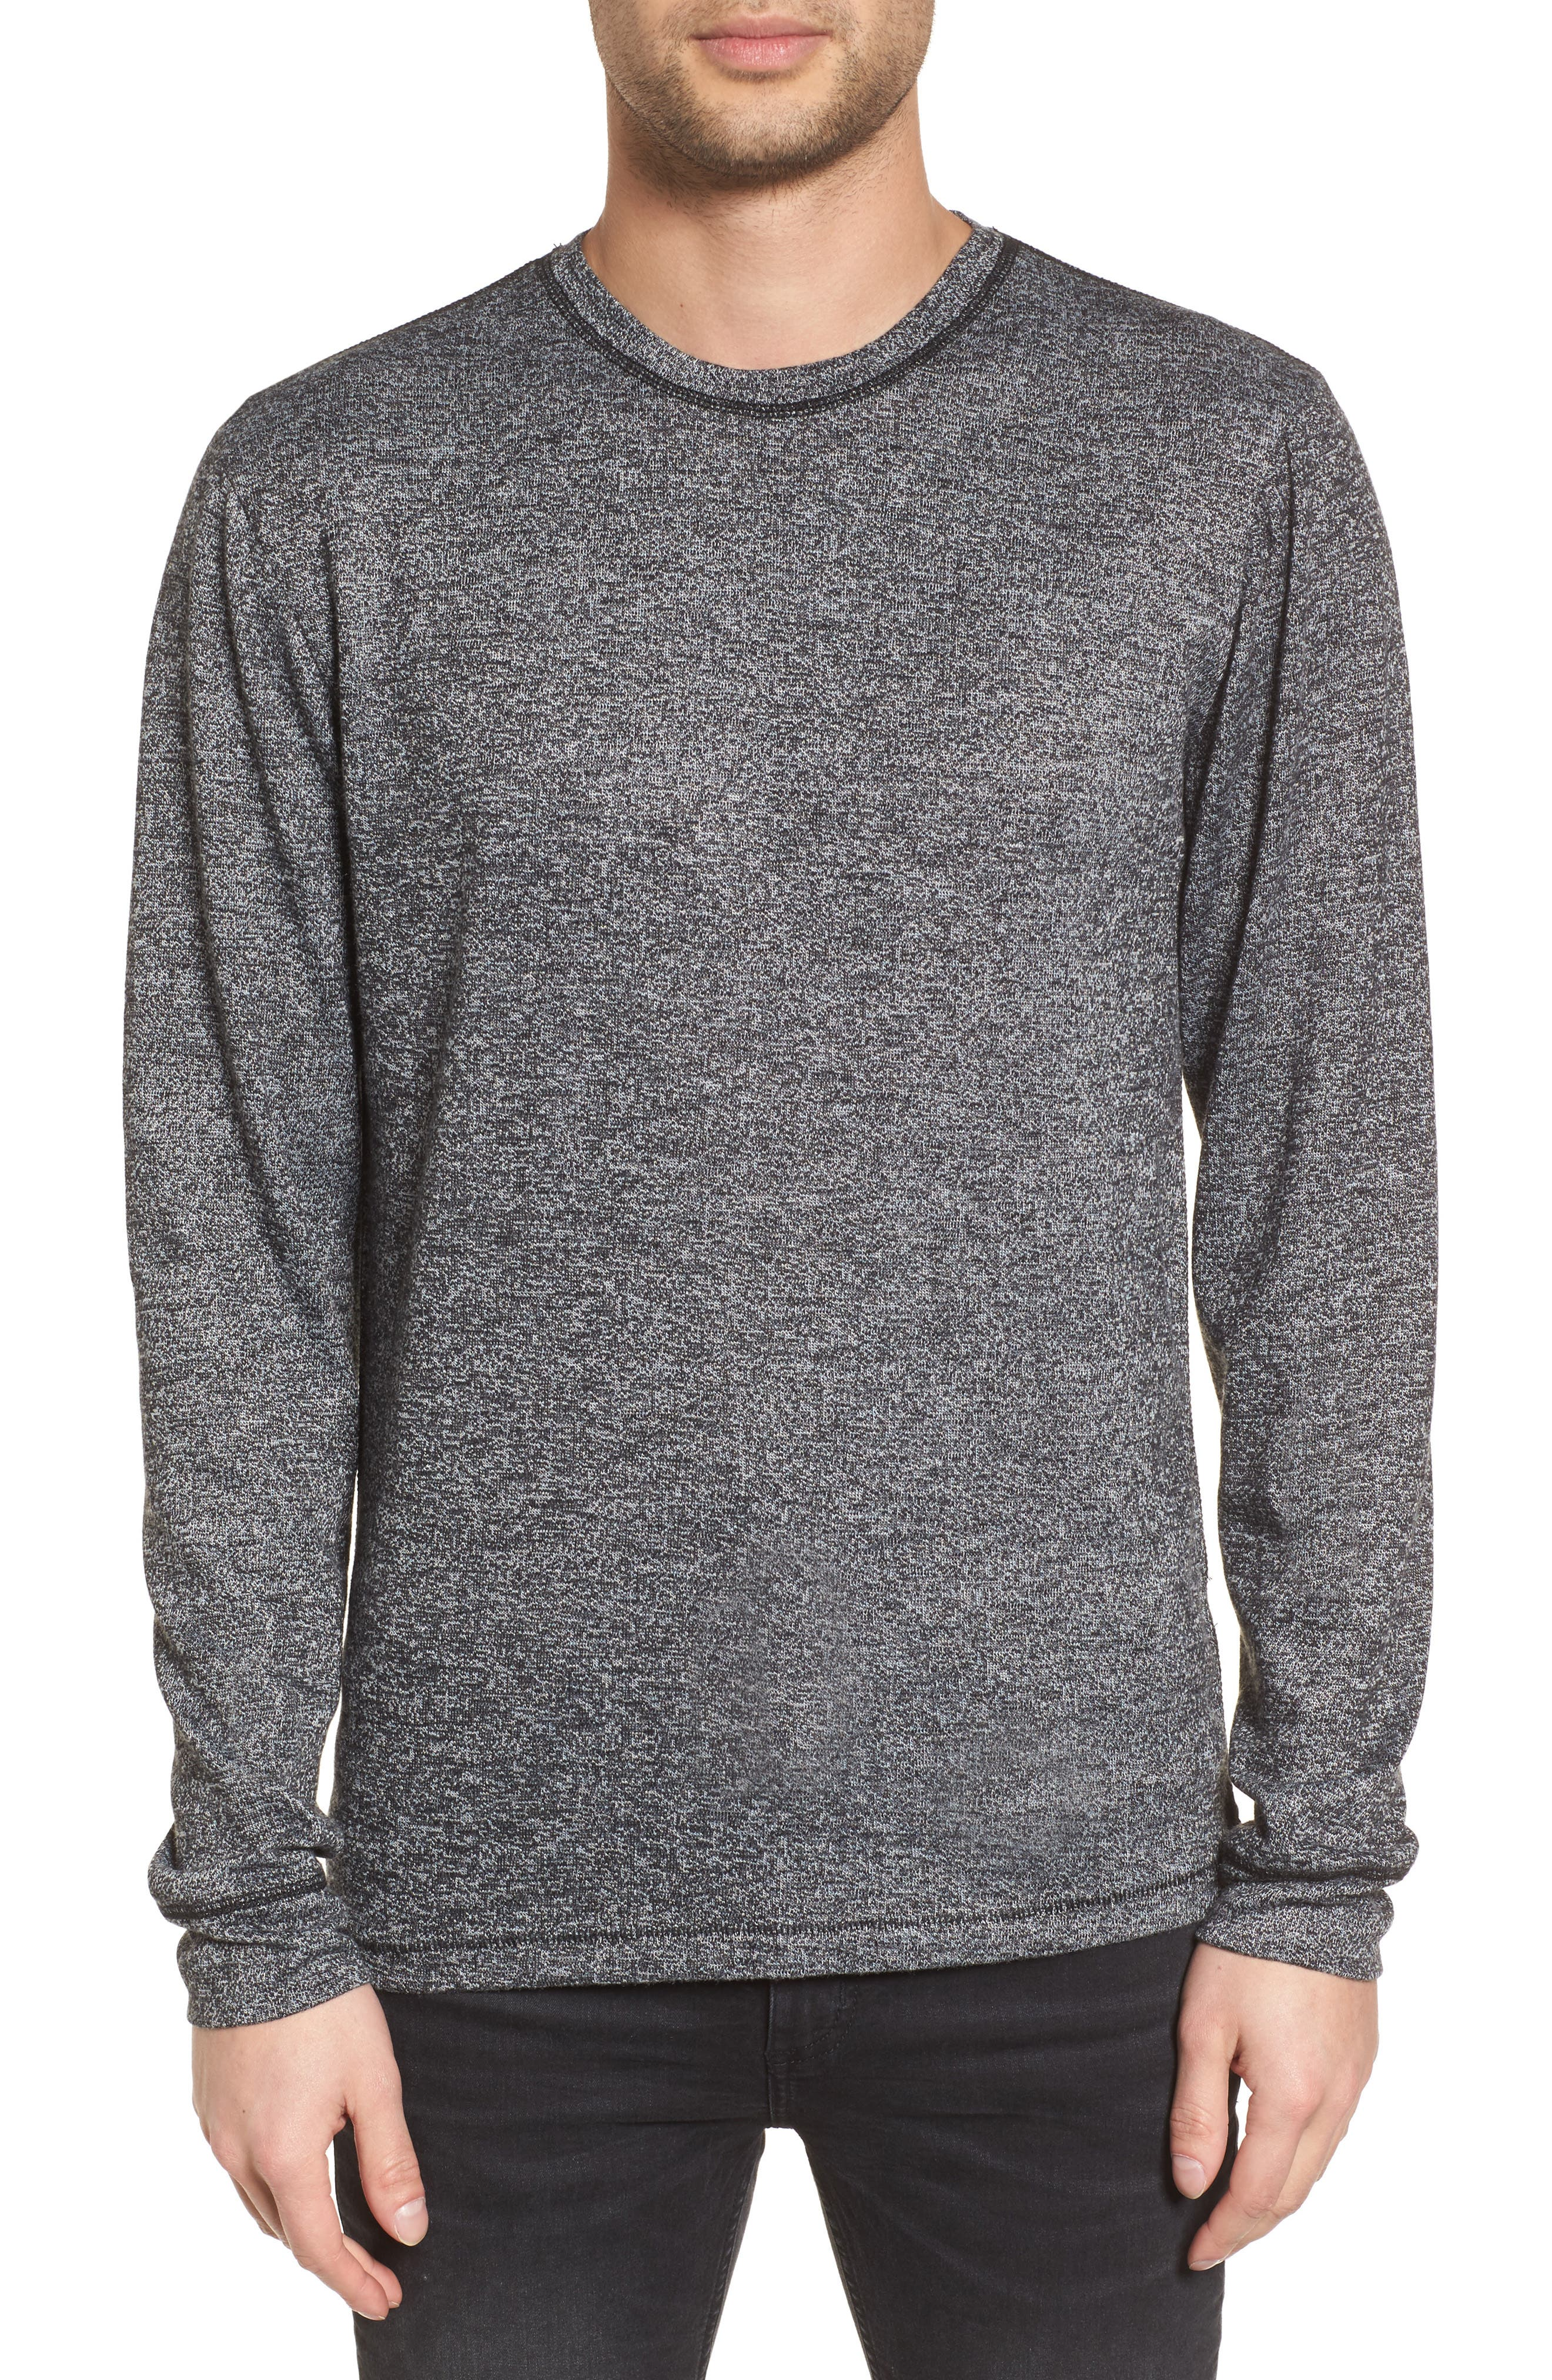 Treasure&Bond Crewneck Sweater,                         Main,                         color, 001